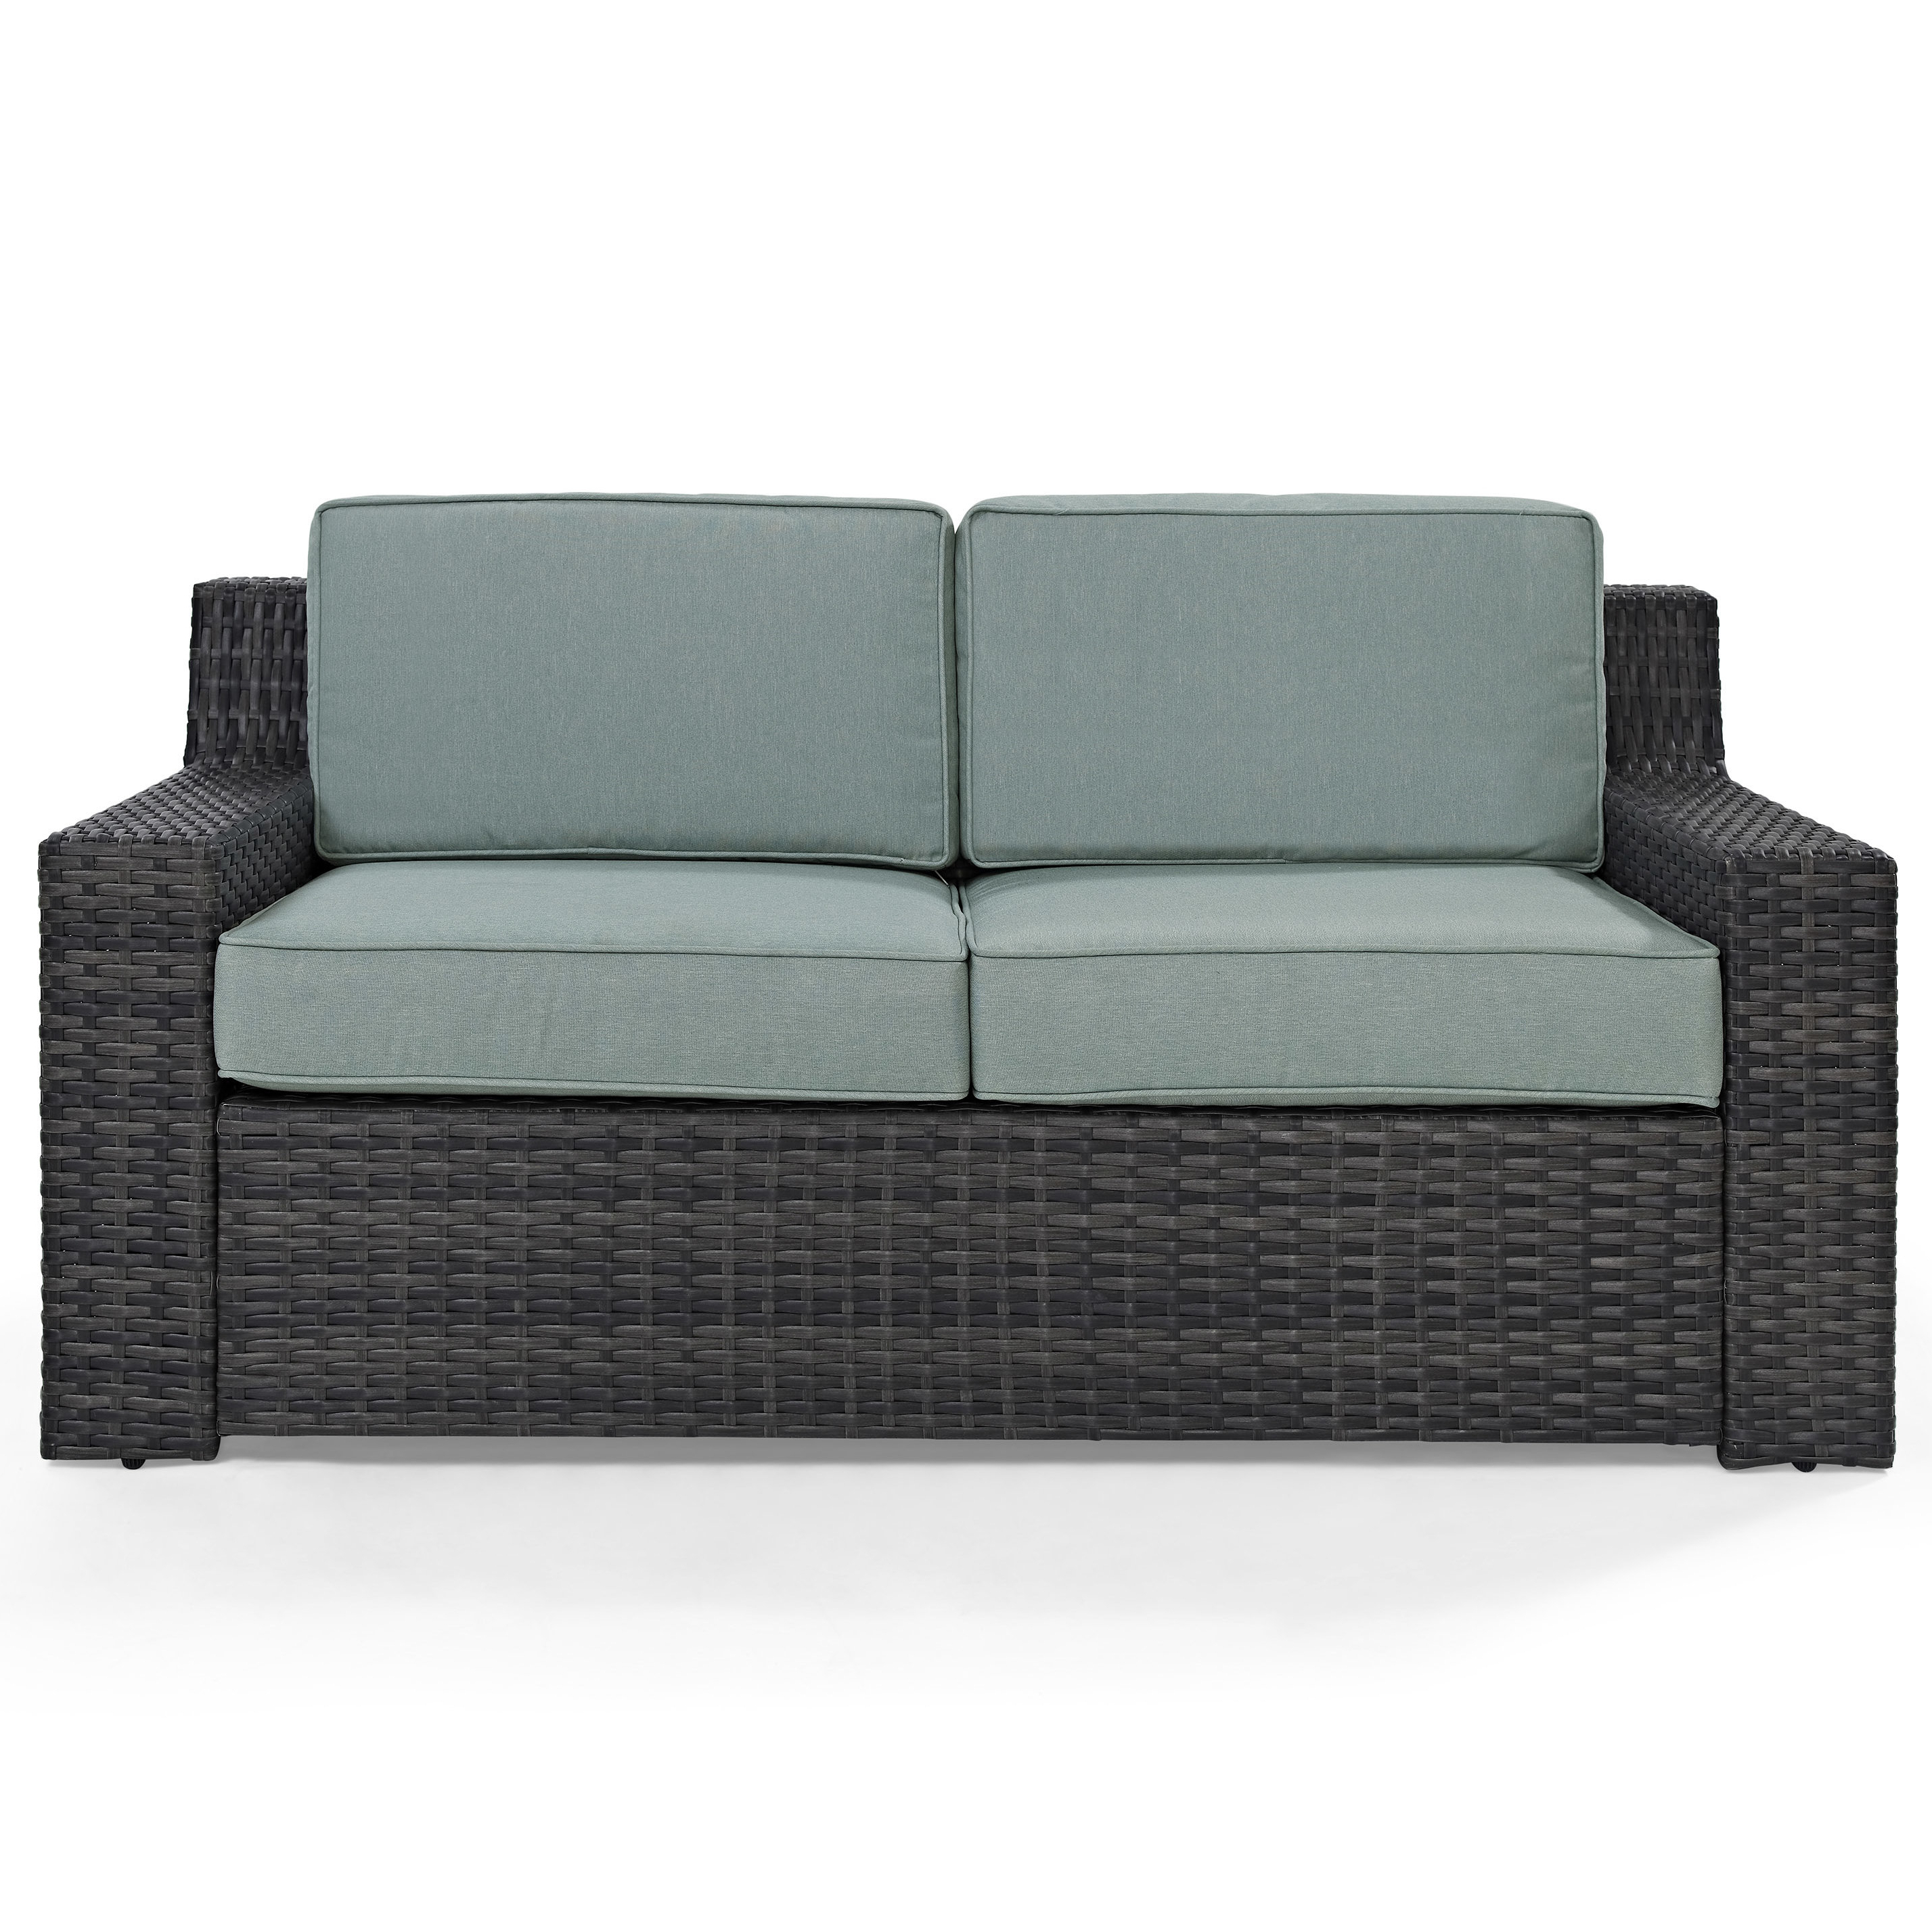 Avadi Outdoor Sofas & Ottomans 3 Piece Set Throughout 2019 Linwood Loveseat With Cushions (View 9 of 25)